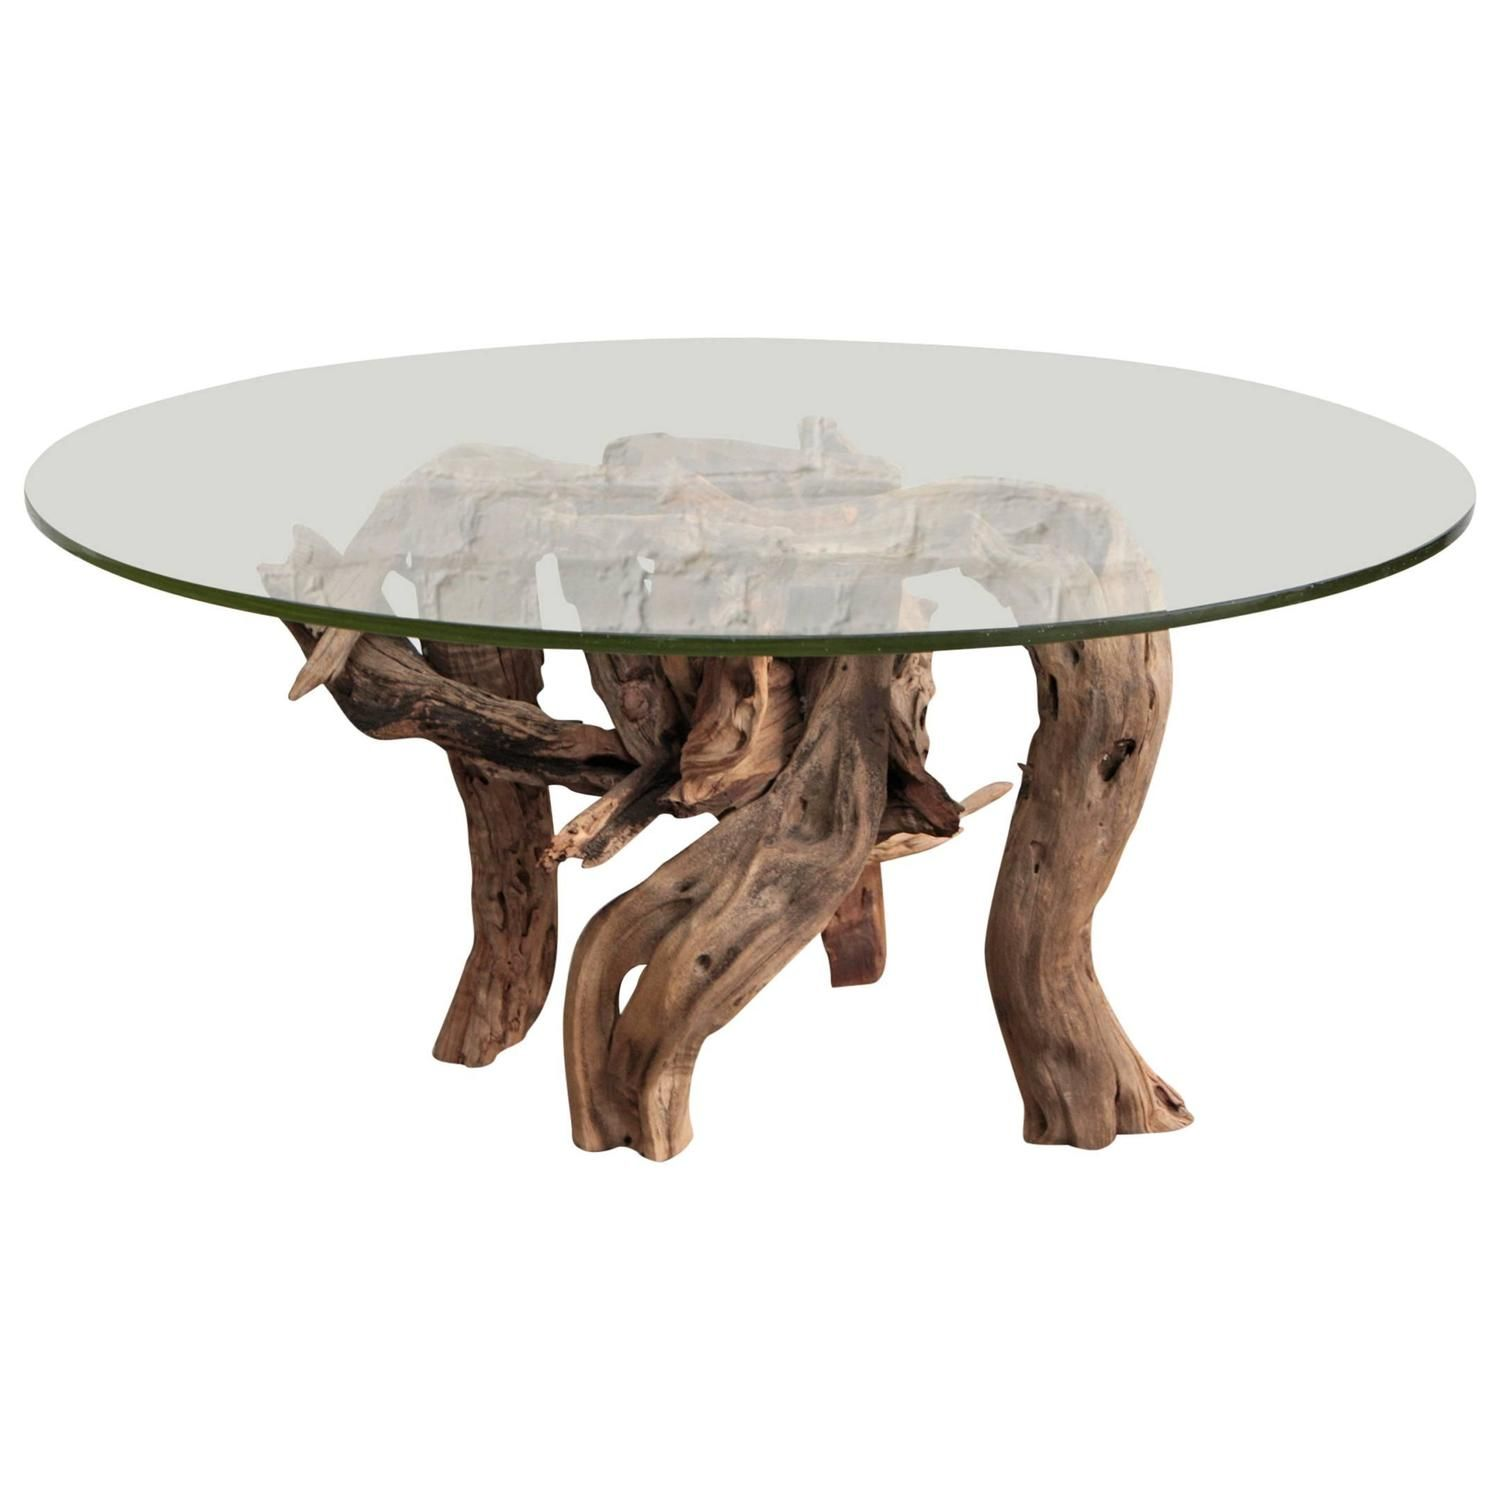 Round glass table top view driftwood coffee table round glass top  driftwood coffee table